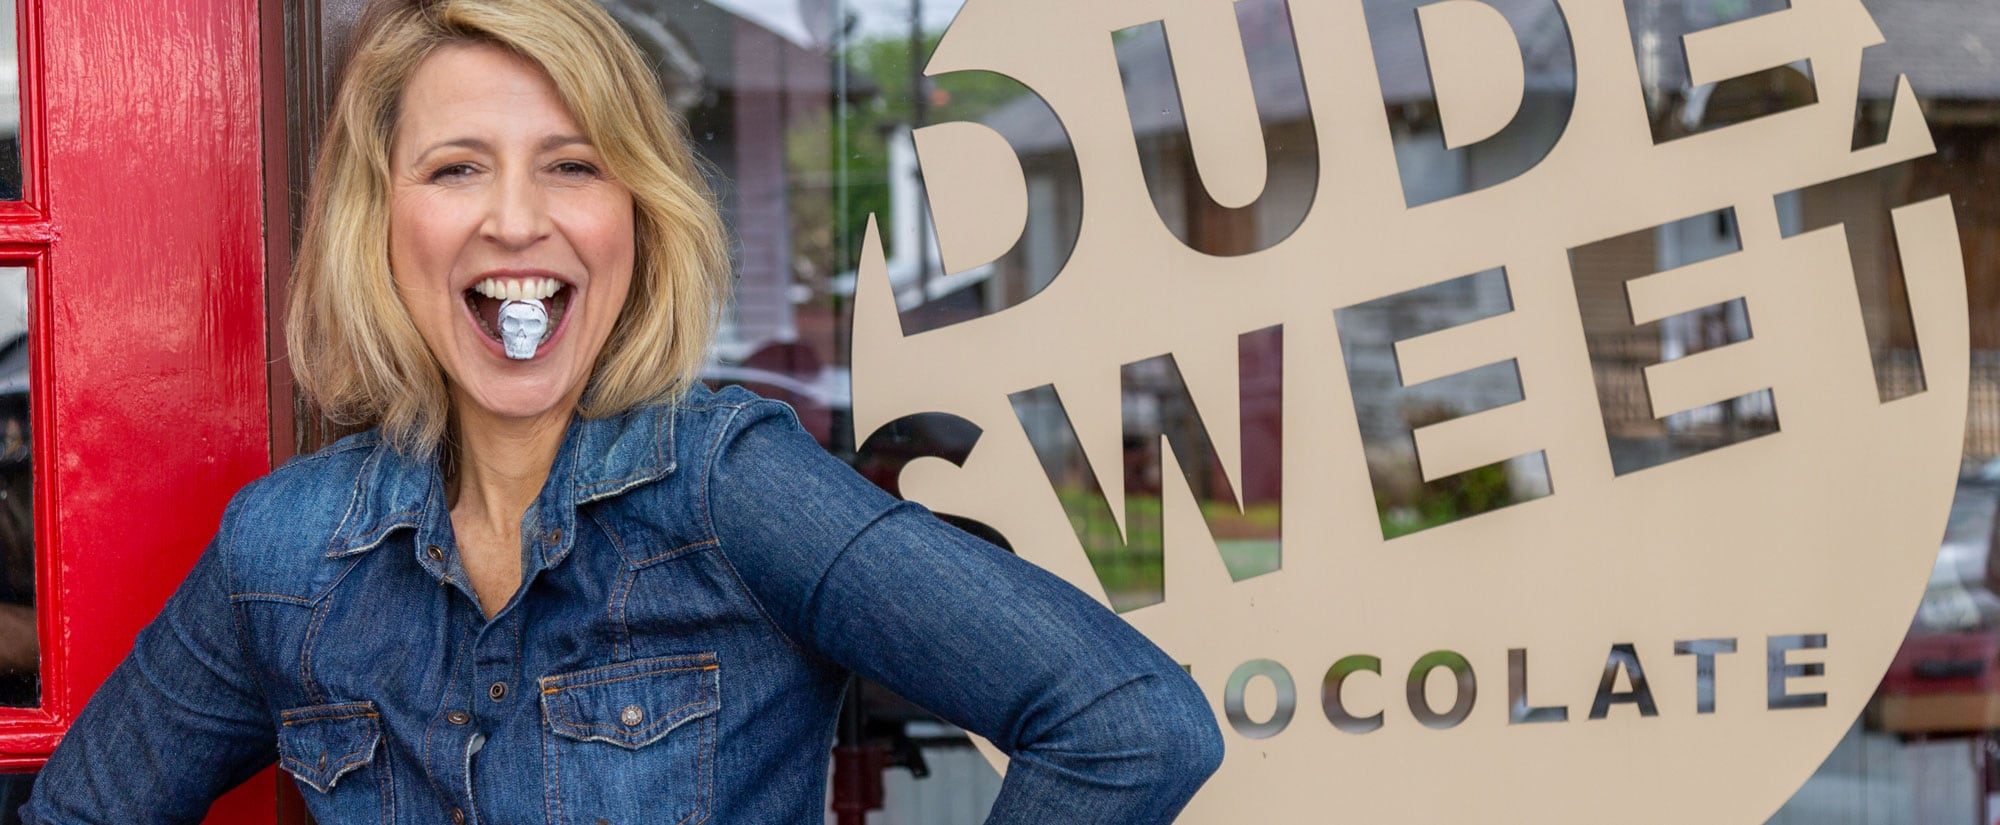 Places To Love - Dallas, Texas - Samantha Brown - Dude, Sweet Chocolate